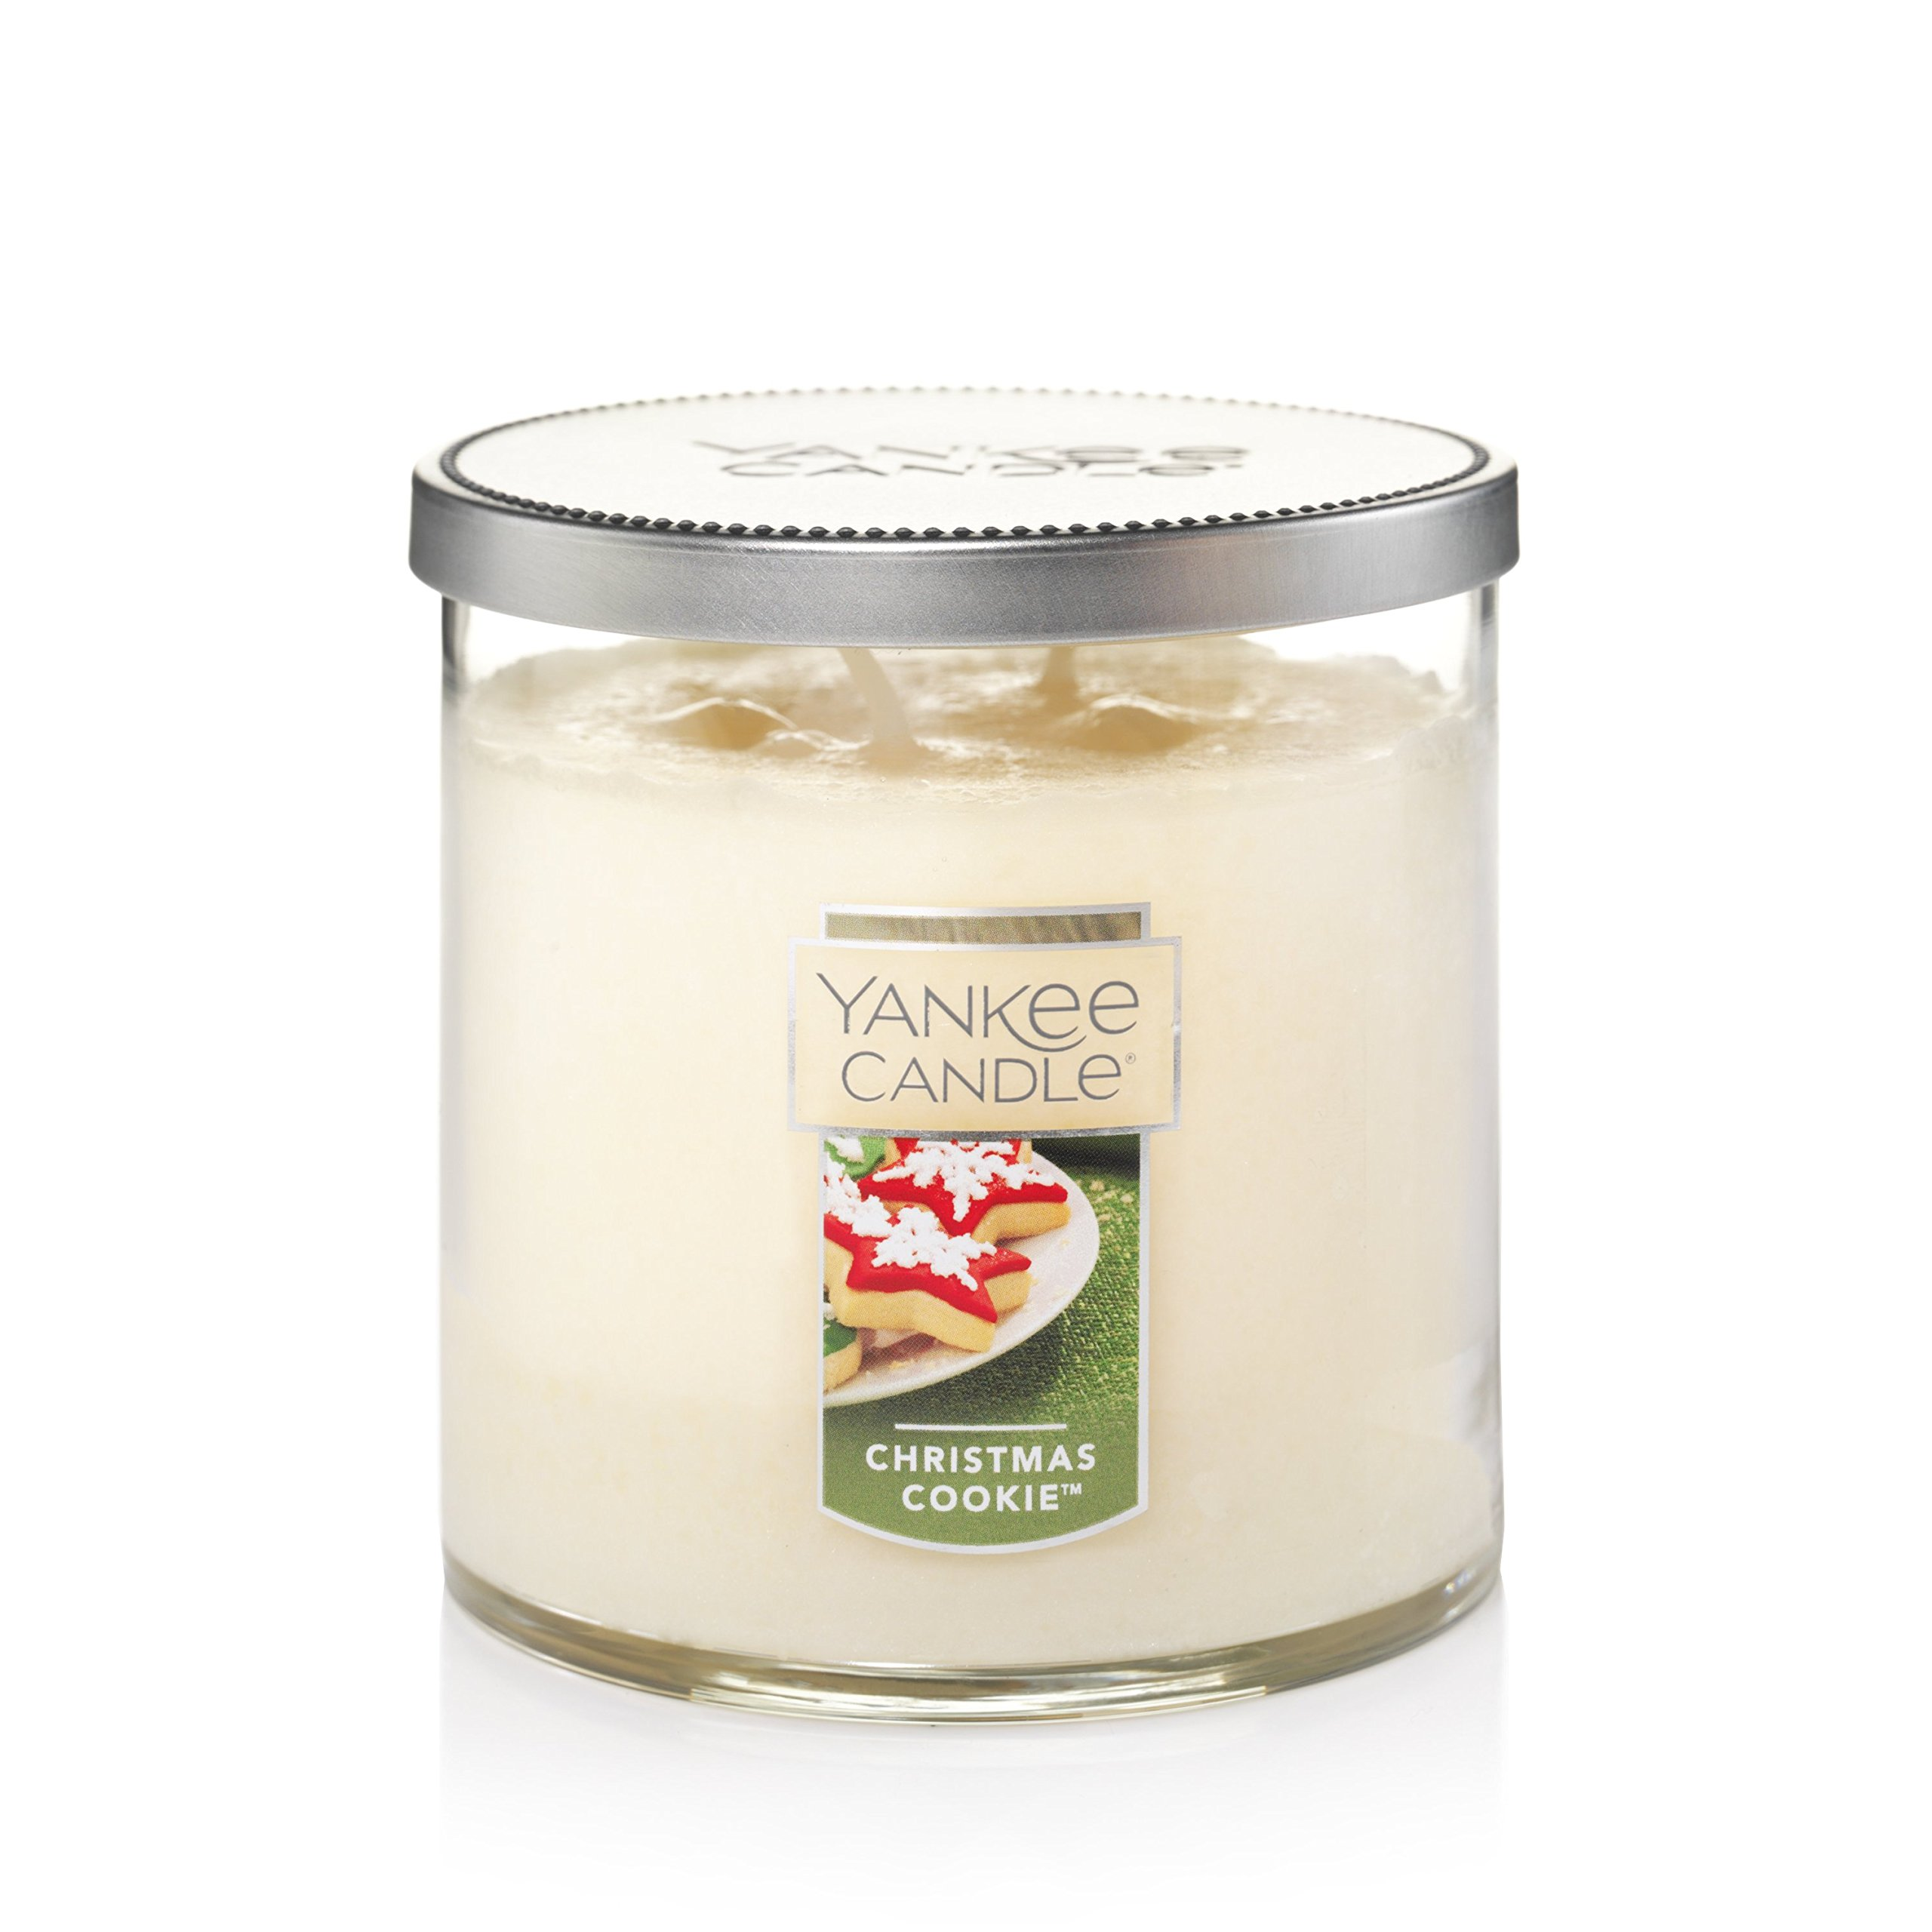 Yankee Candle Medium 2-Wick Tumbler Candle, Christmas Cookie